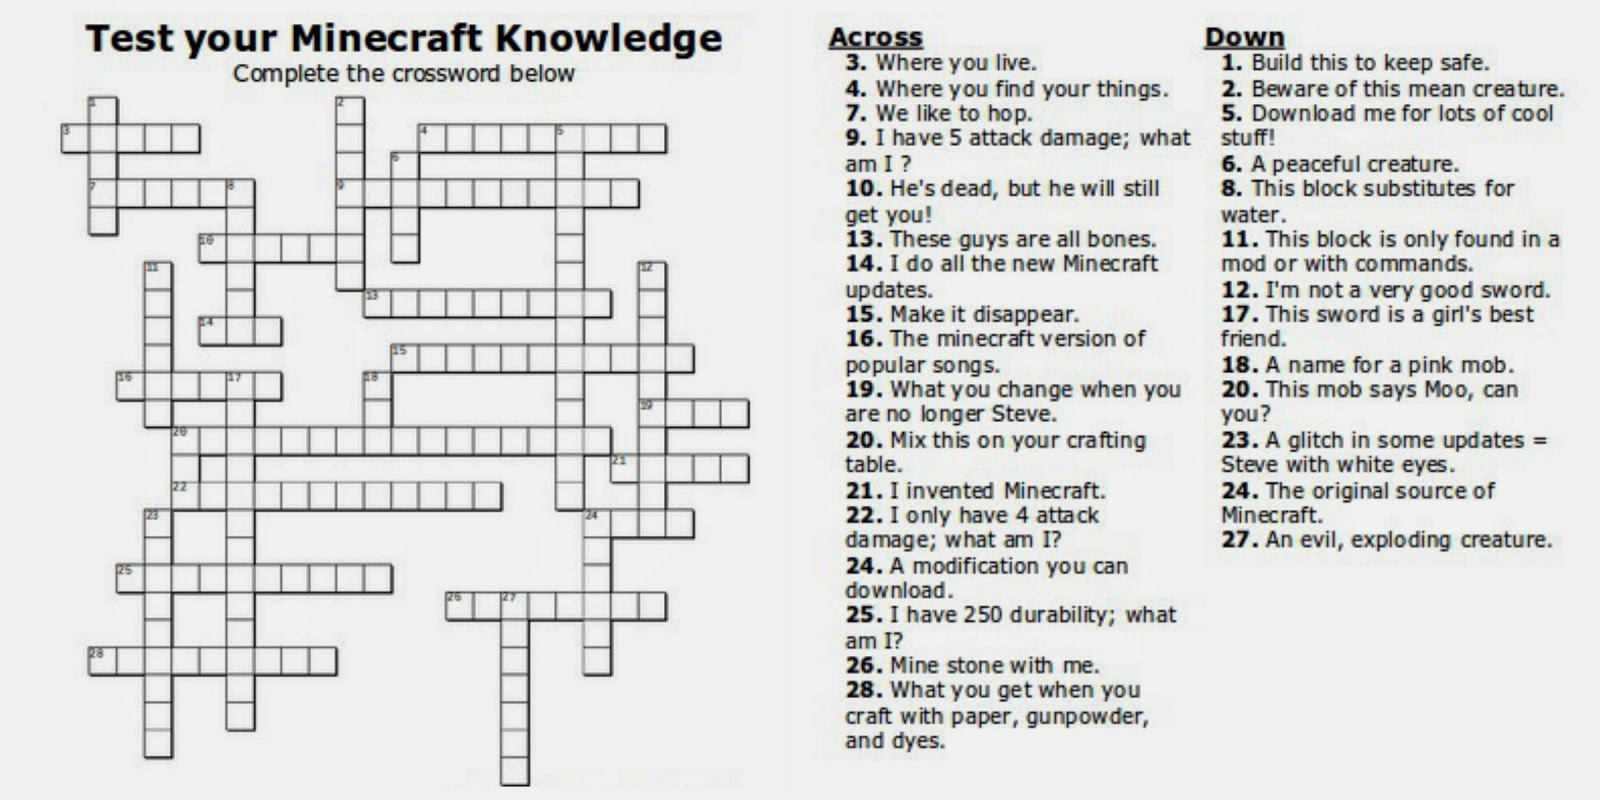 Free Printable Minecraft Crossword Search: Test Your Minecraft - Create A Crossword Puzzle Free Printable